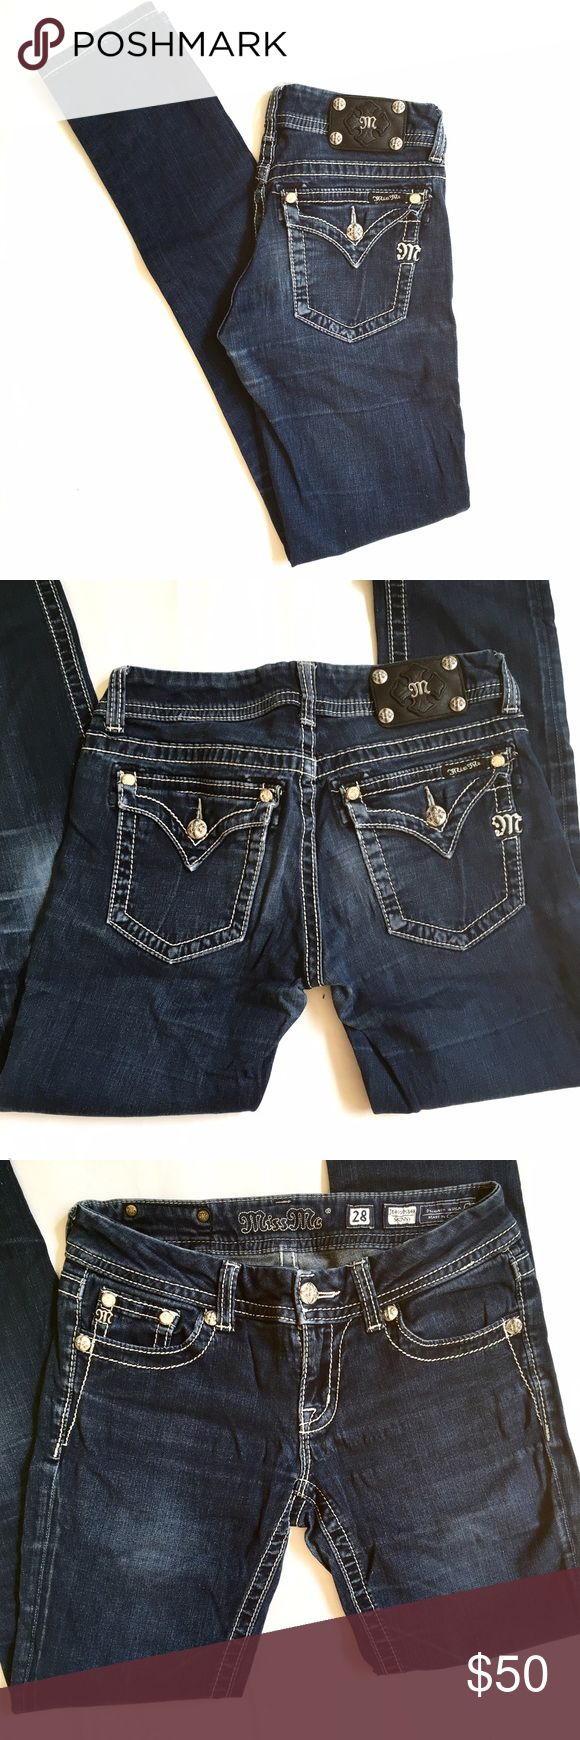 "Miss Me JE4009534X Skinny Jean, Sz 28 Waist 15"", rise 7.5"", inseam 33.5"". Awesome Miss Me skinny jeans! Excellent condition. Miss Me Jeans"